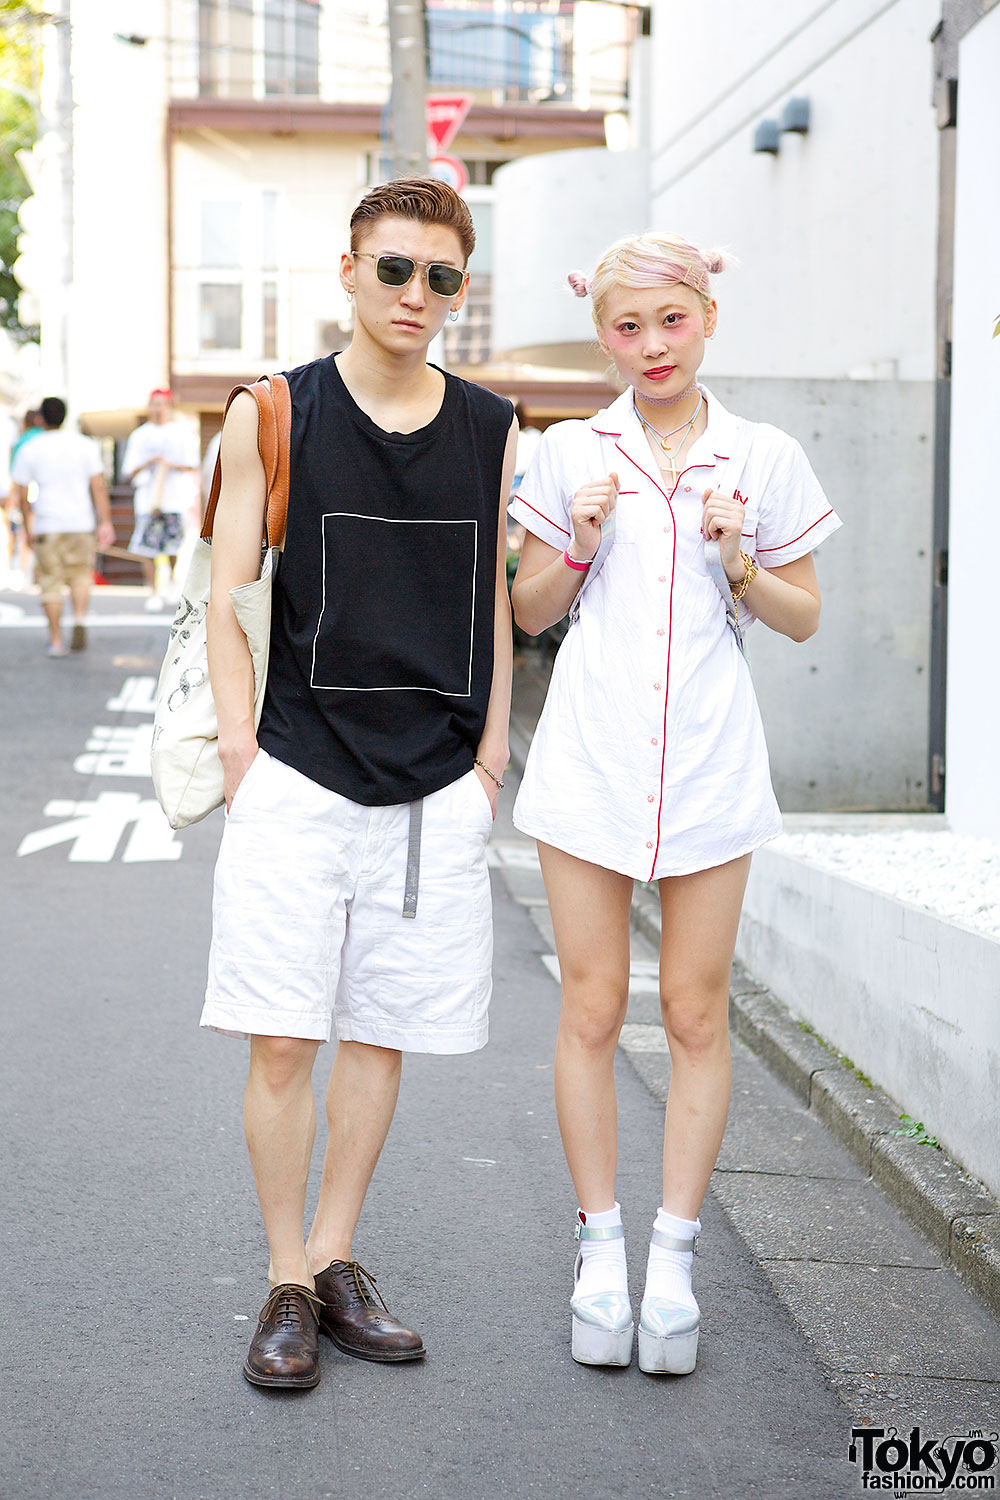 Pink Haired Harajuku Girl in LilLilly & Givenchy vs. Guy in i Tokyo Me & Ralph Lauren